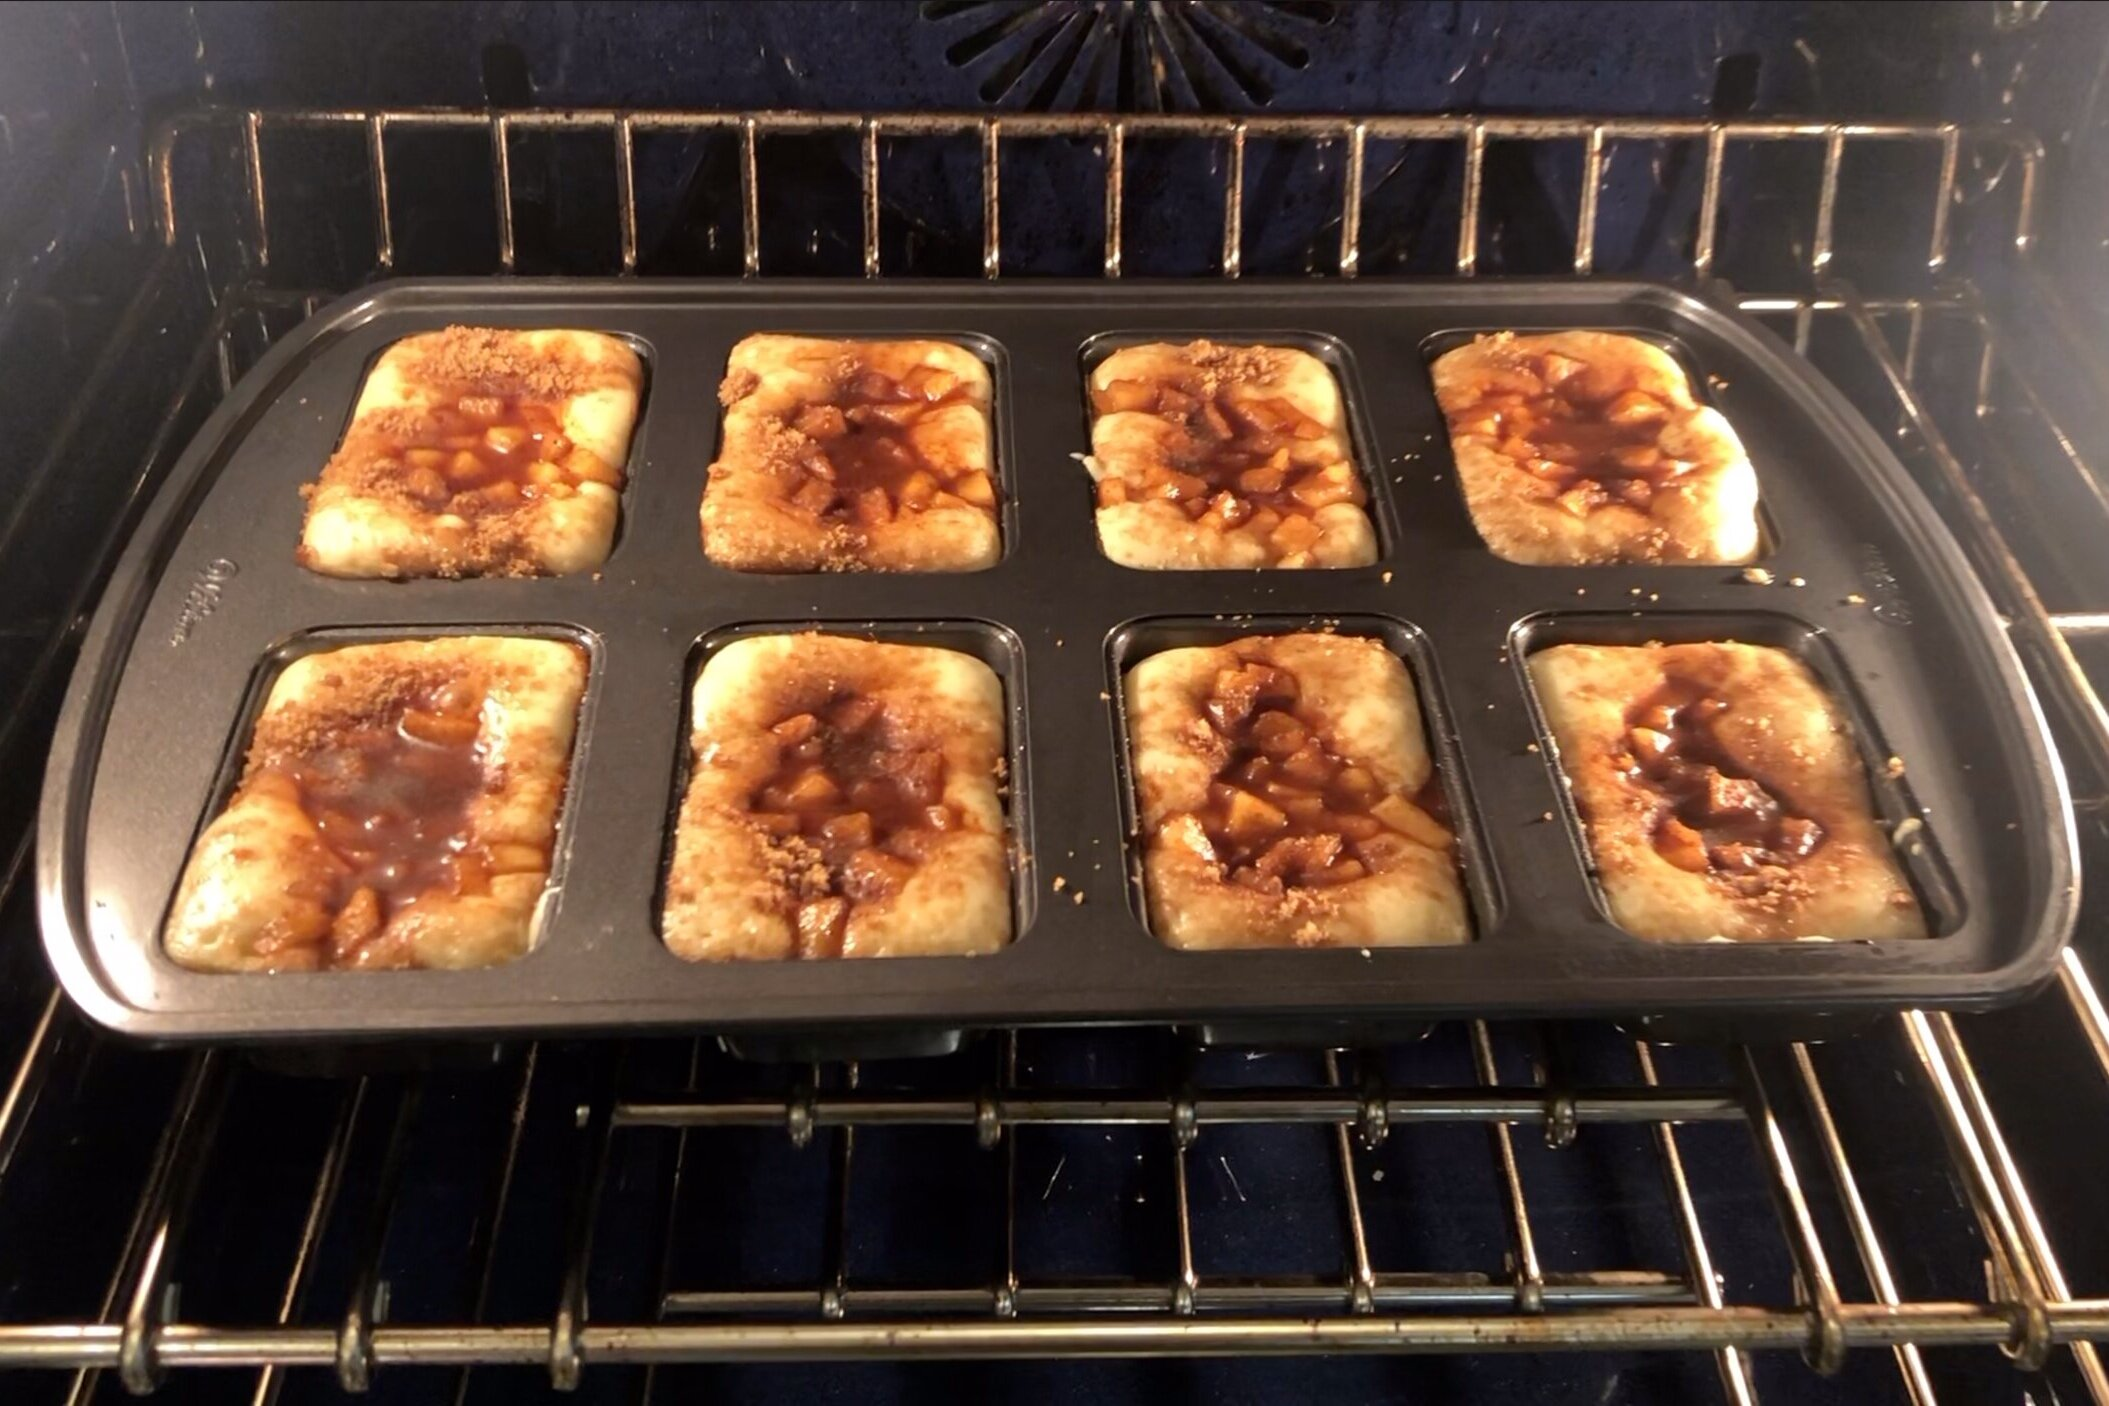 14. Bake for 22-24 minutes or until a toothpick inserted into the center comes out mostly clean. -